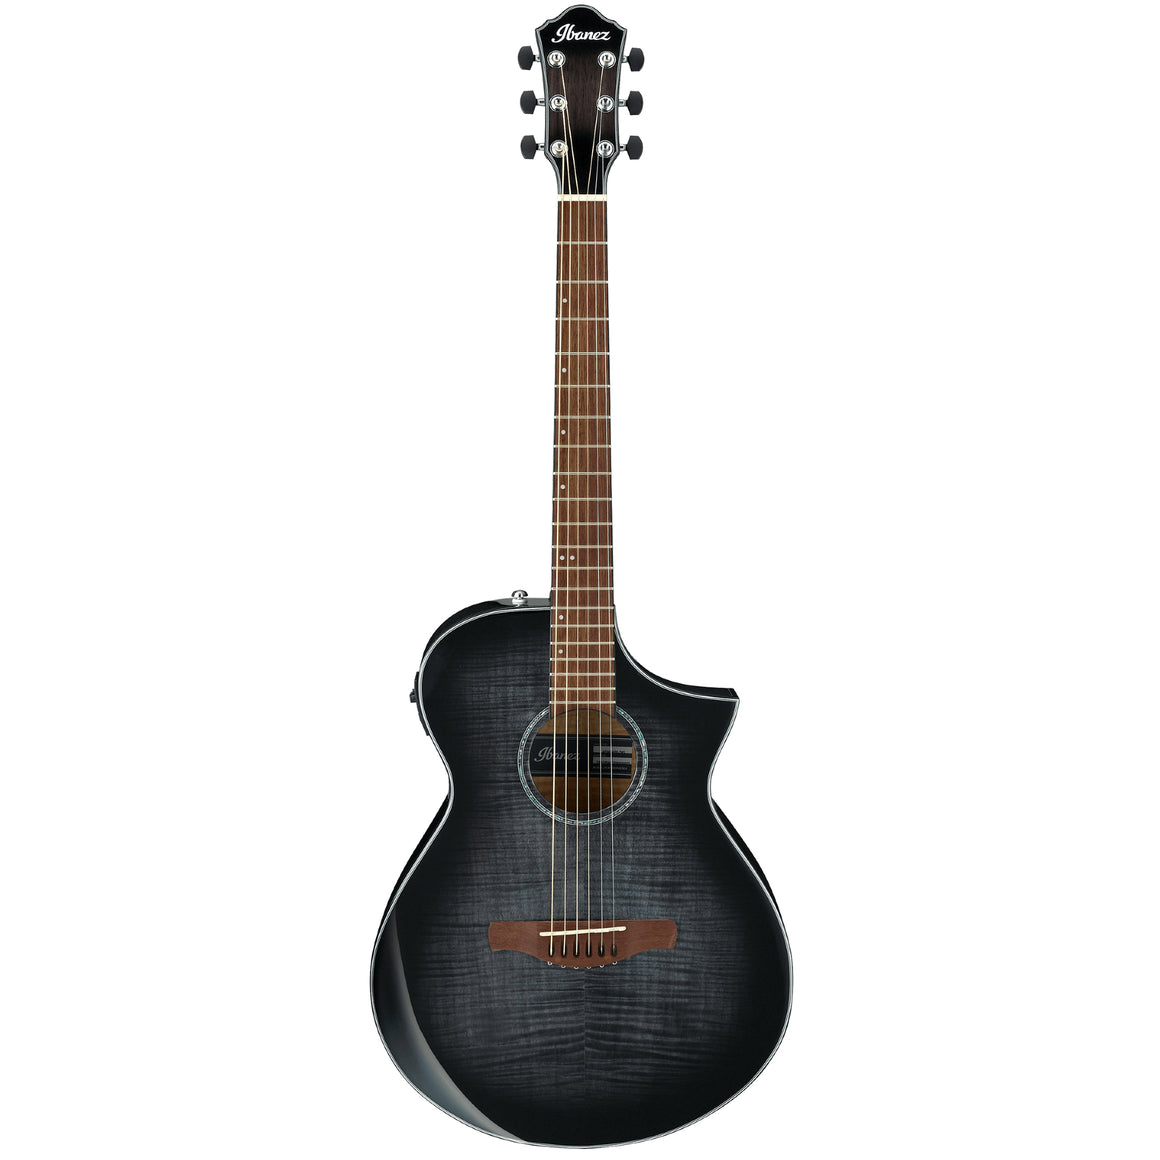 Ibanez AEWC400 Acoustic Electric Guitar - Trans Black Sunburst